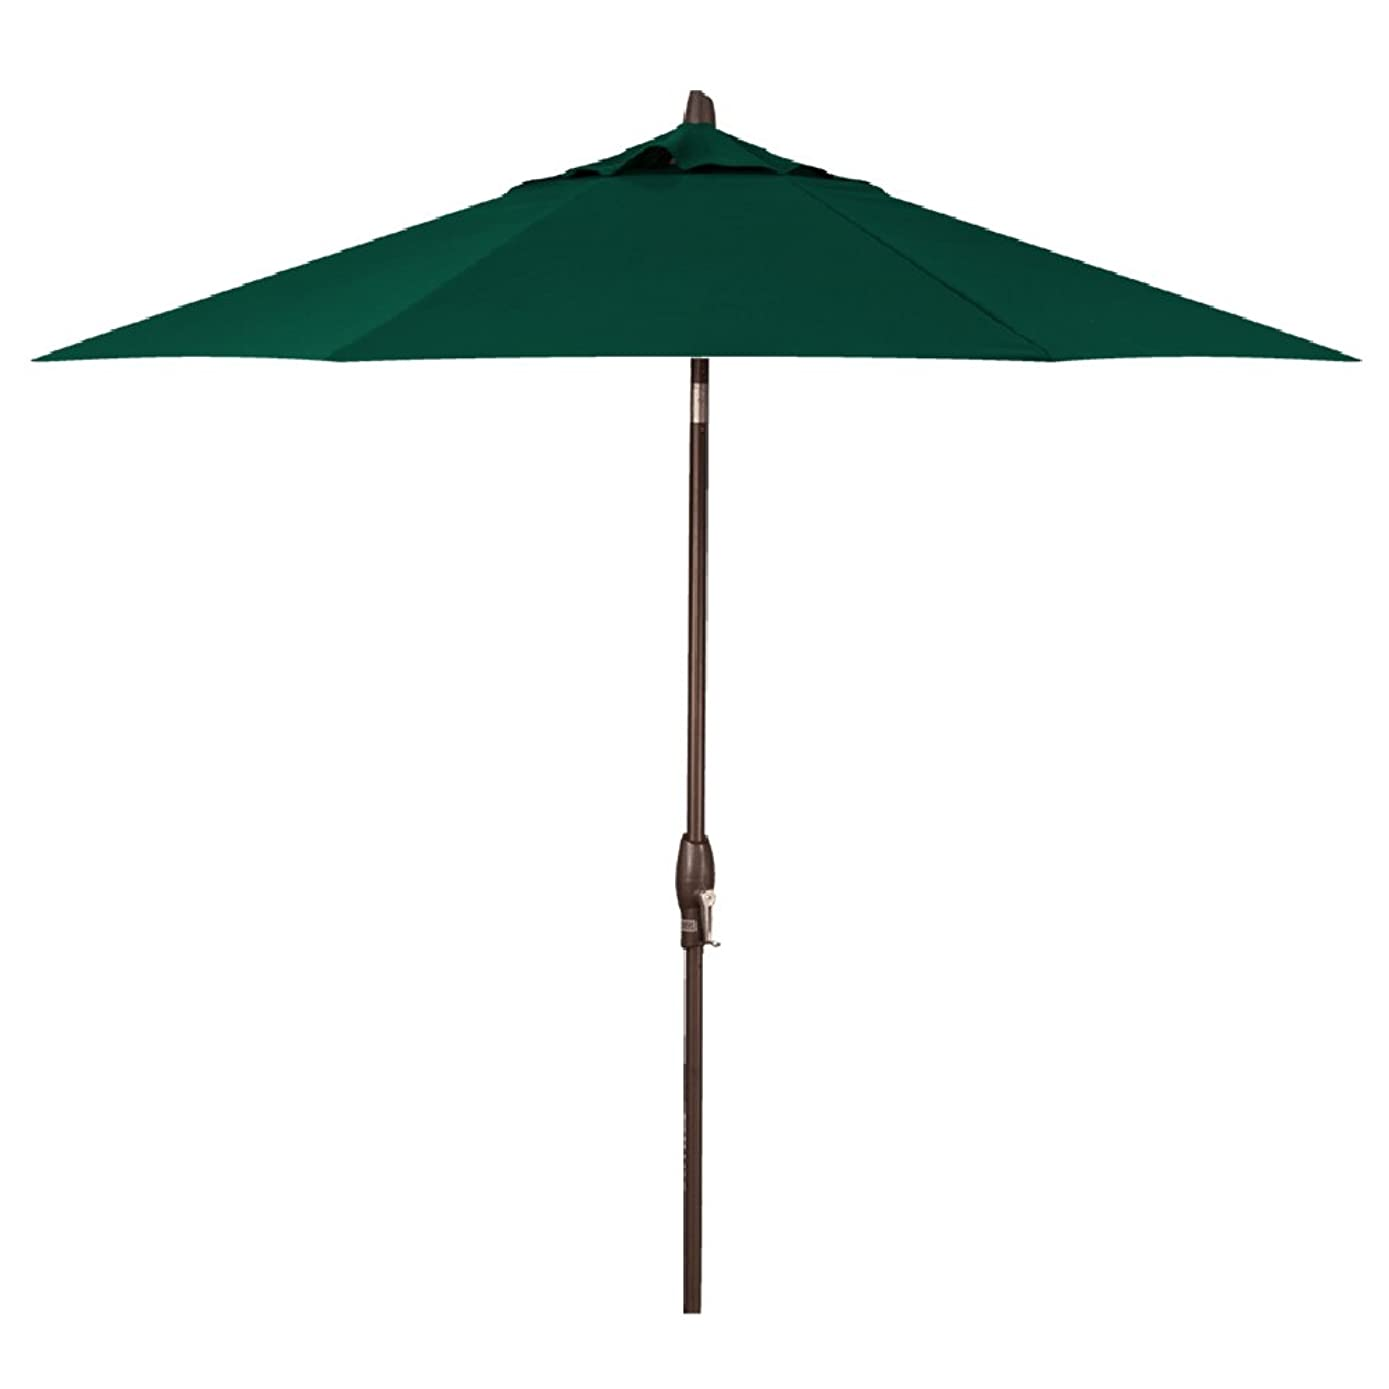 Treasure Garden 9-Foot (Model 810) Deluxe Auto-Tilt Market Umbrella with Bronze Frame and Sunbrella Fabric: Forest Green (Includes Extended Frame Warrantee)